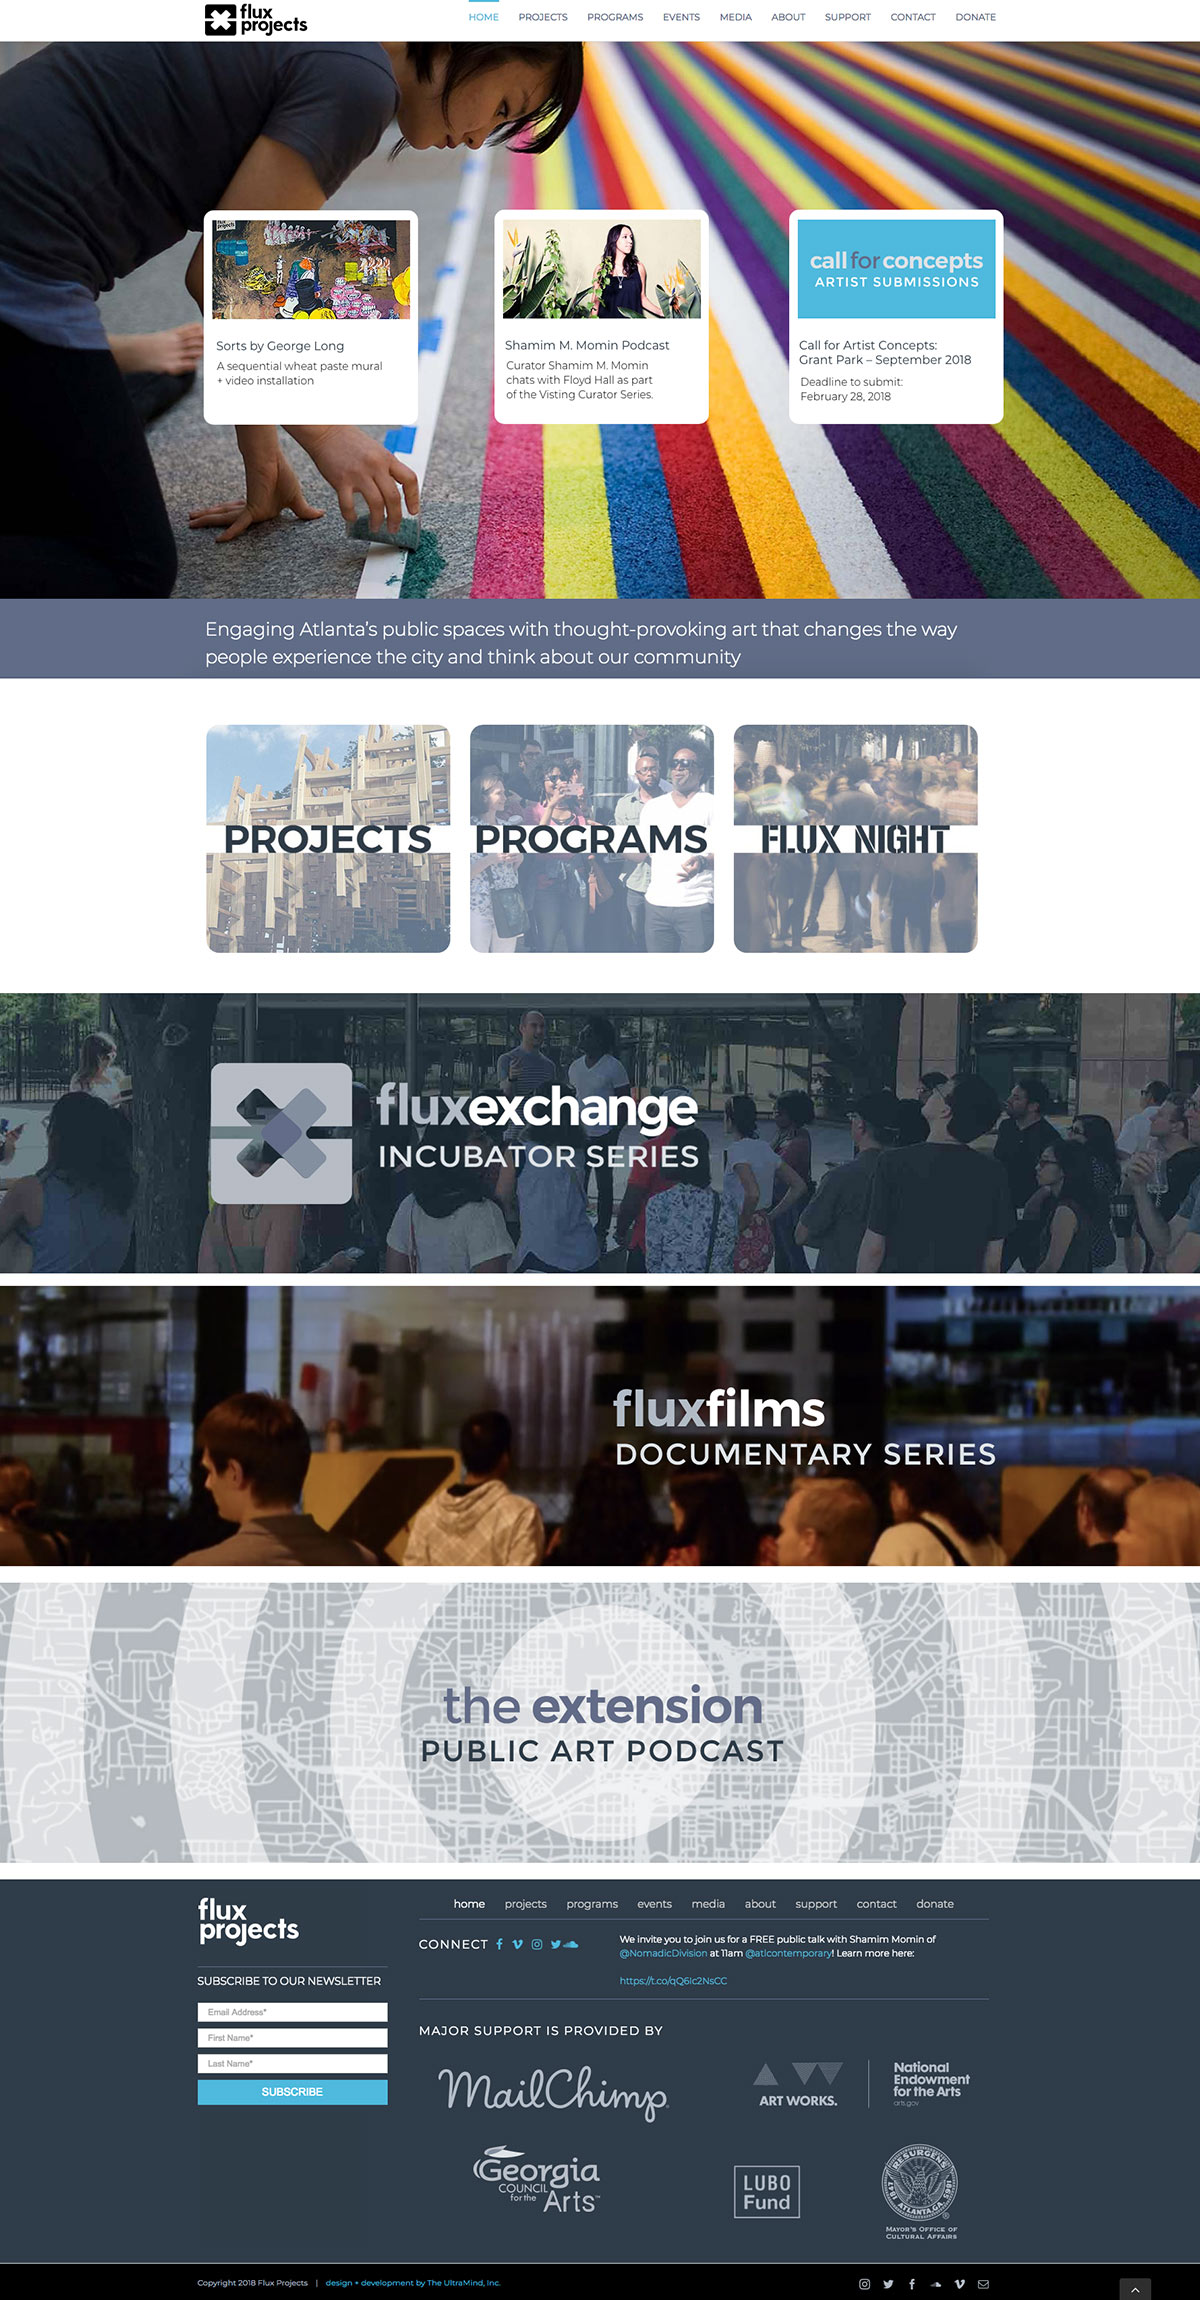 FluxProjects.org web site design and development home page